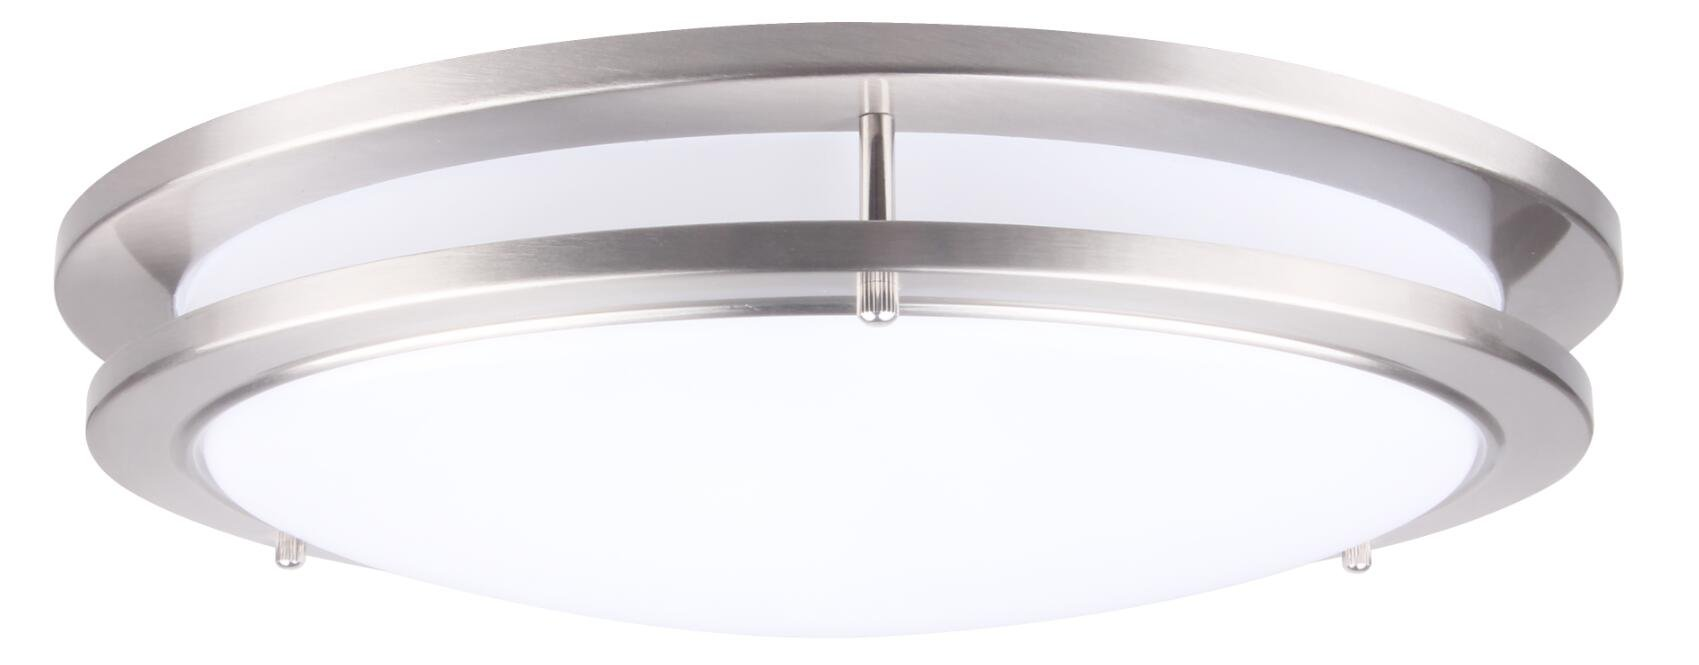 Lit-Path 15 inch Dimmable LED Flush Mount Ceiling Lighting Fixture, 27.5W Replace 200W, 1925 Lumen, Satin Nickel Finish, ETL and ES Qualified